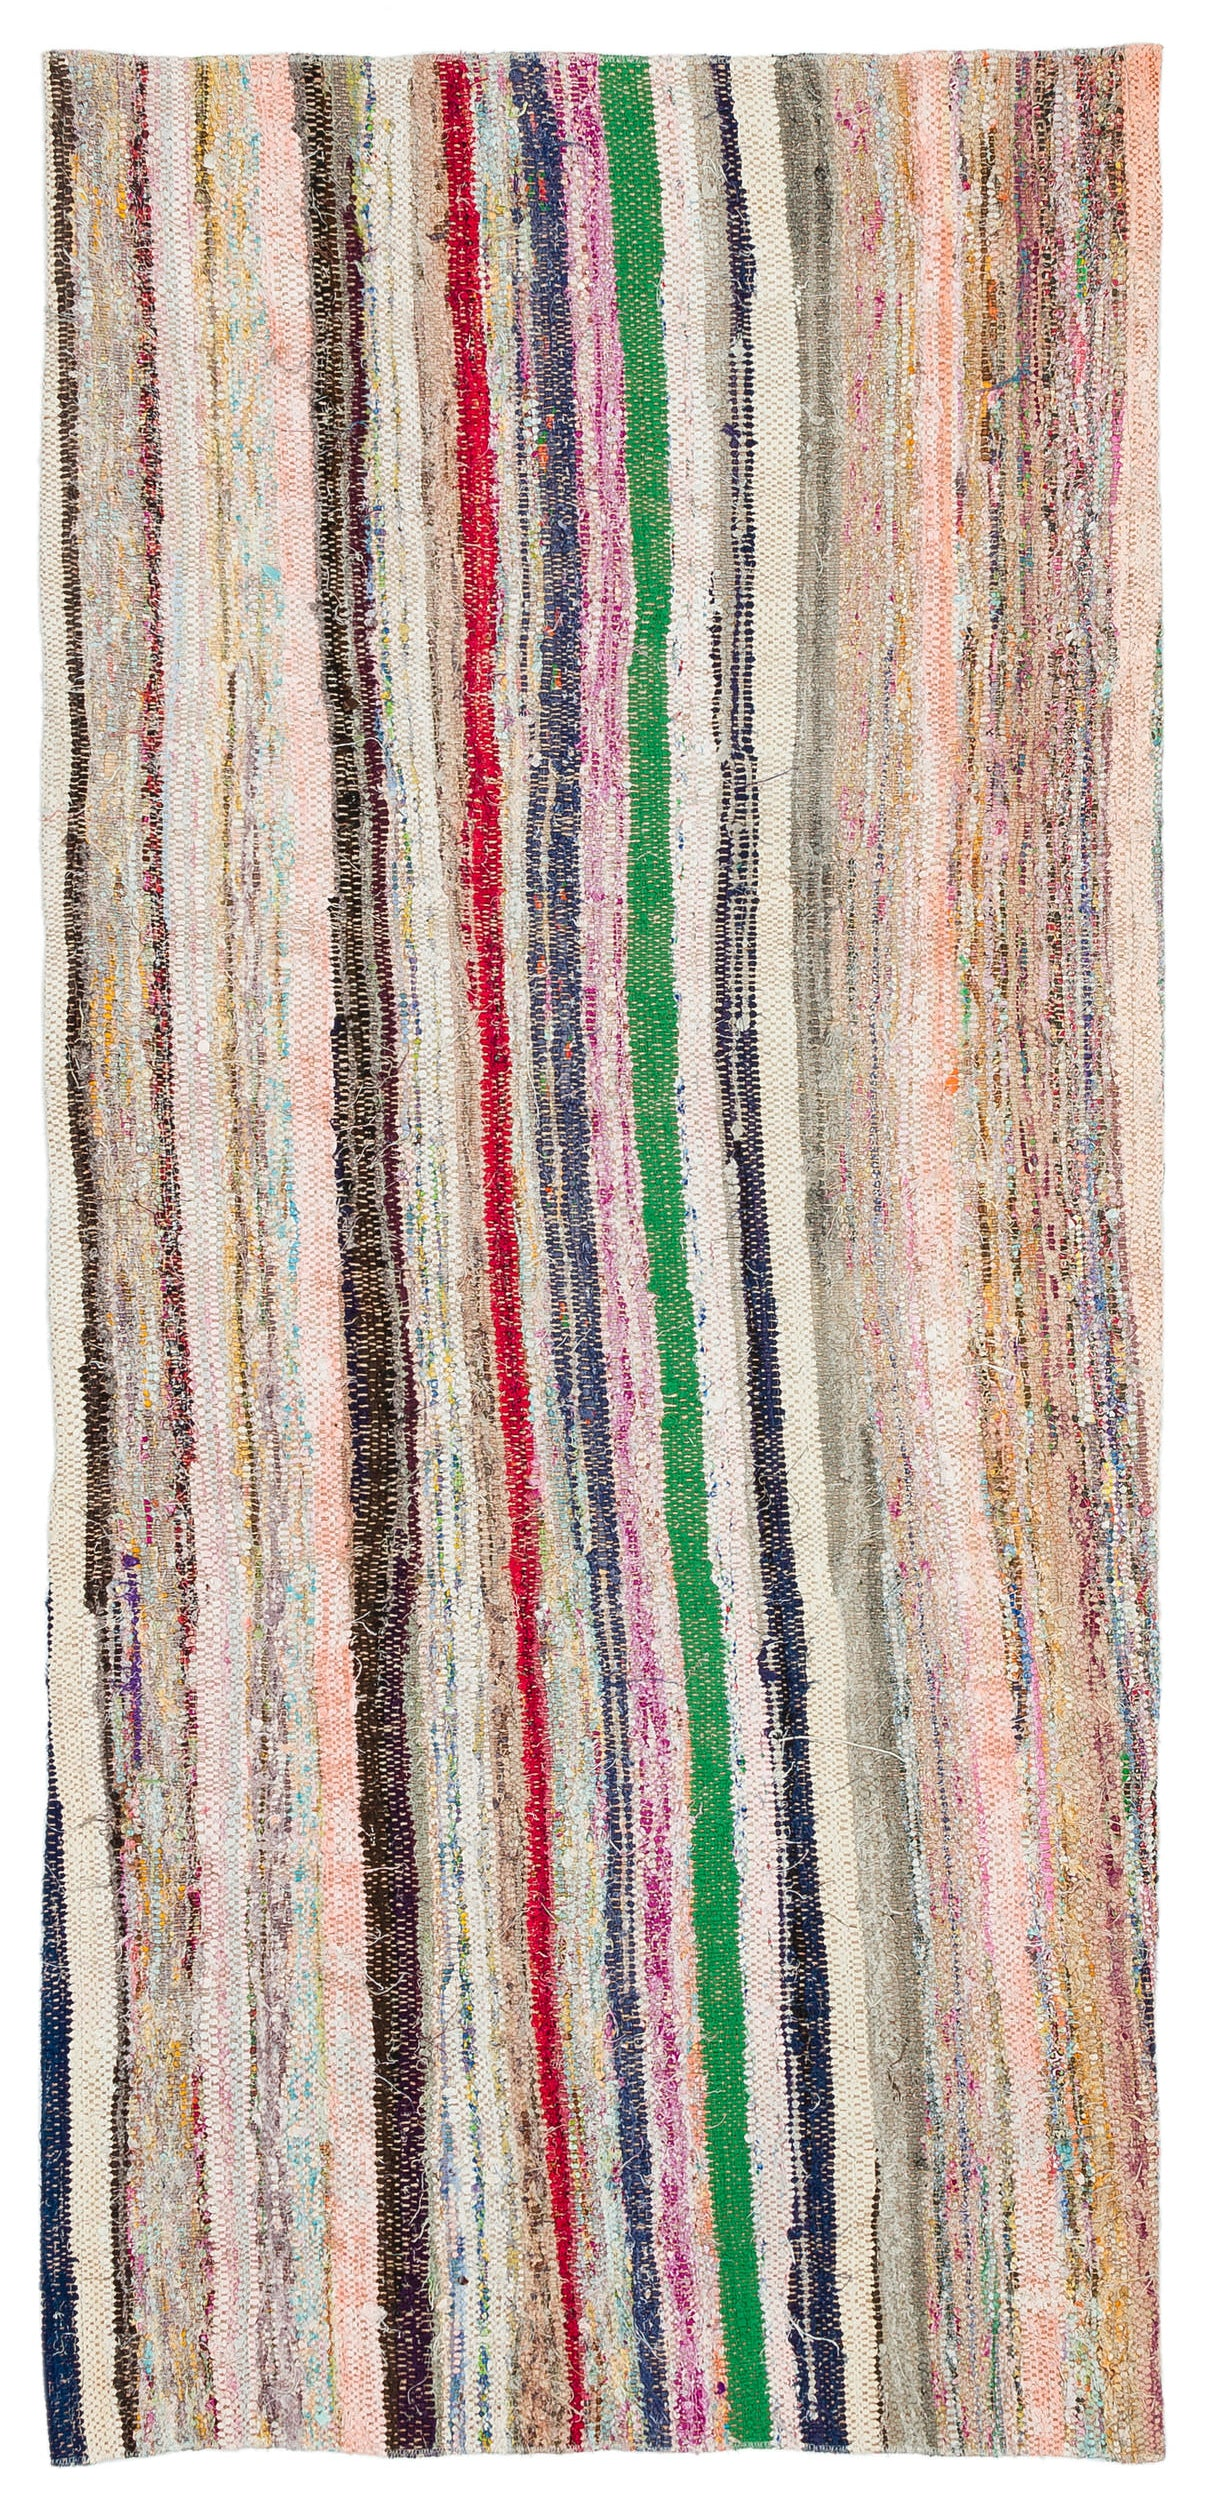 Chaput Over Dyed Kilim Rug 2'7'' x 5'9'' ft 80 x 174 cm